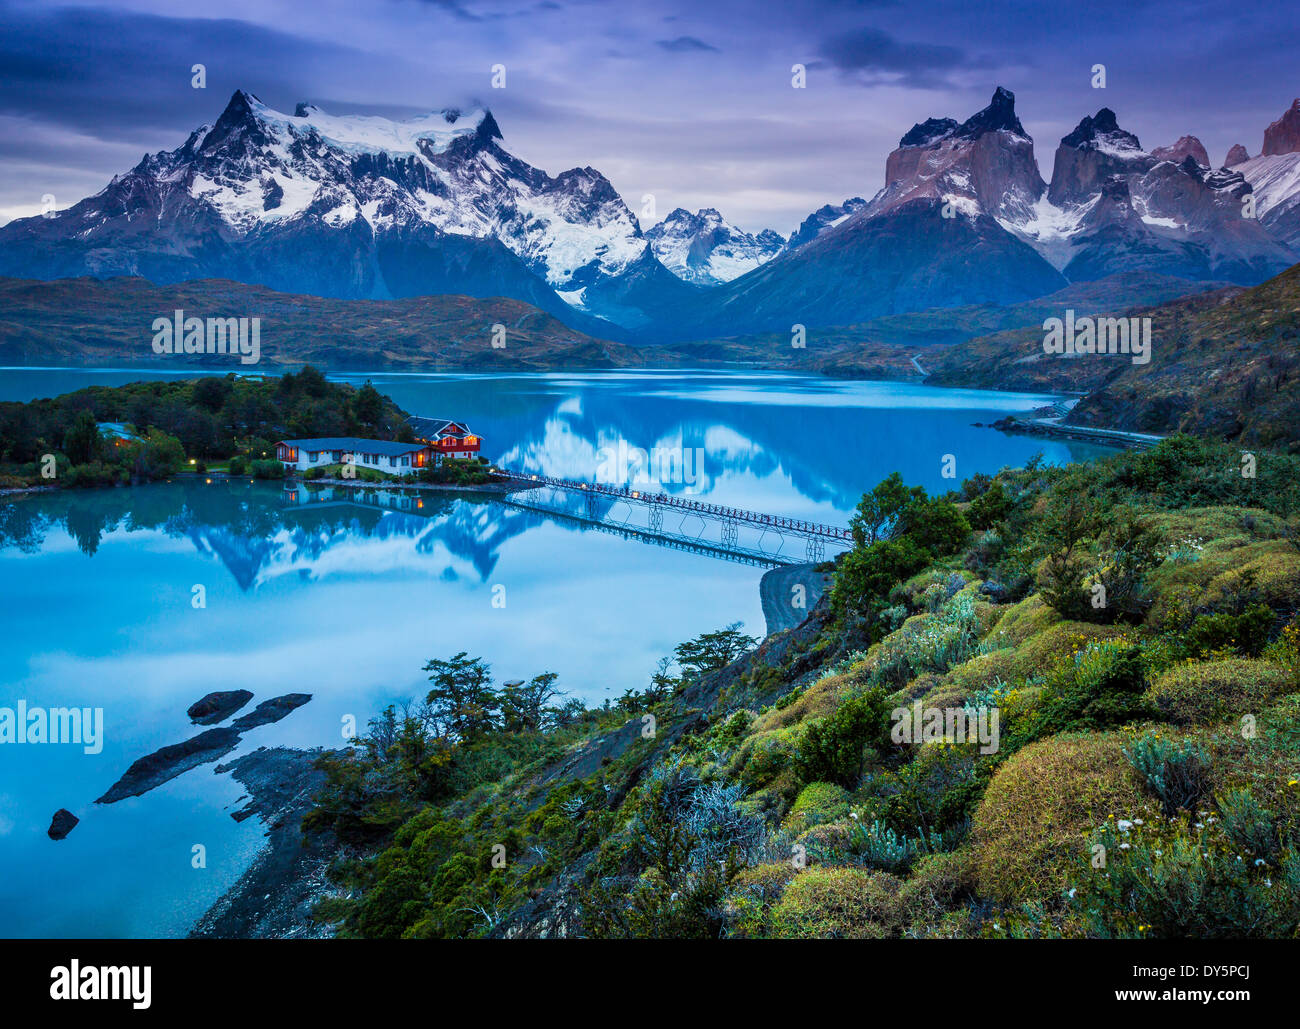 Lago Pehoe, dans le Parc National Torres del Paine, Patagonie Chilienne partie de Photo Stock